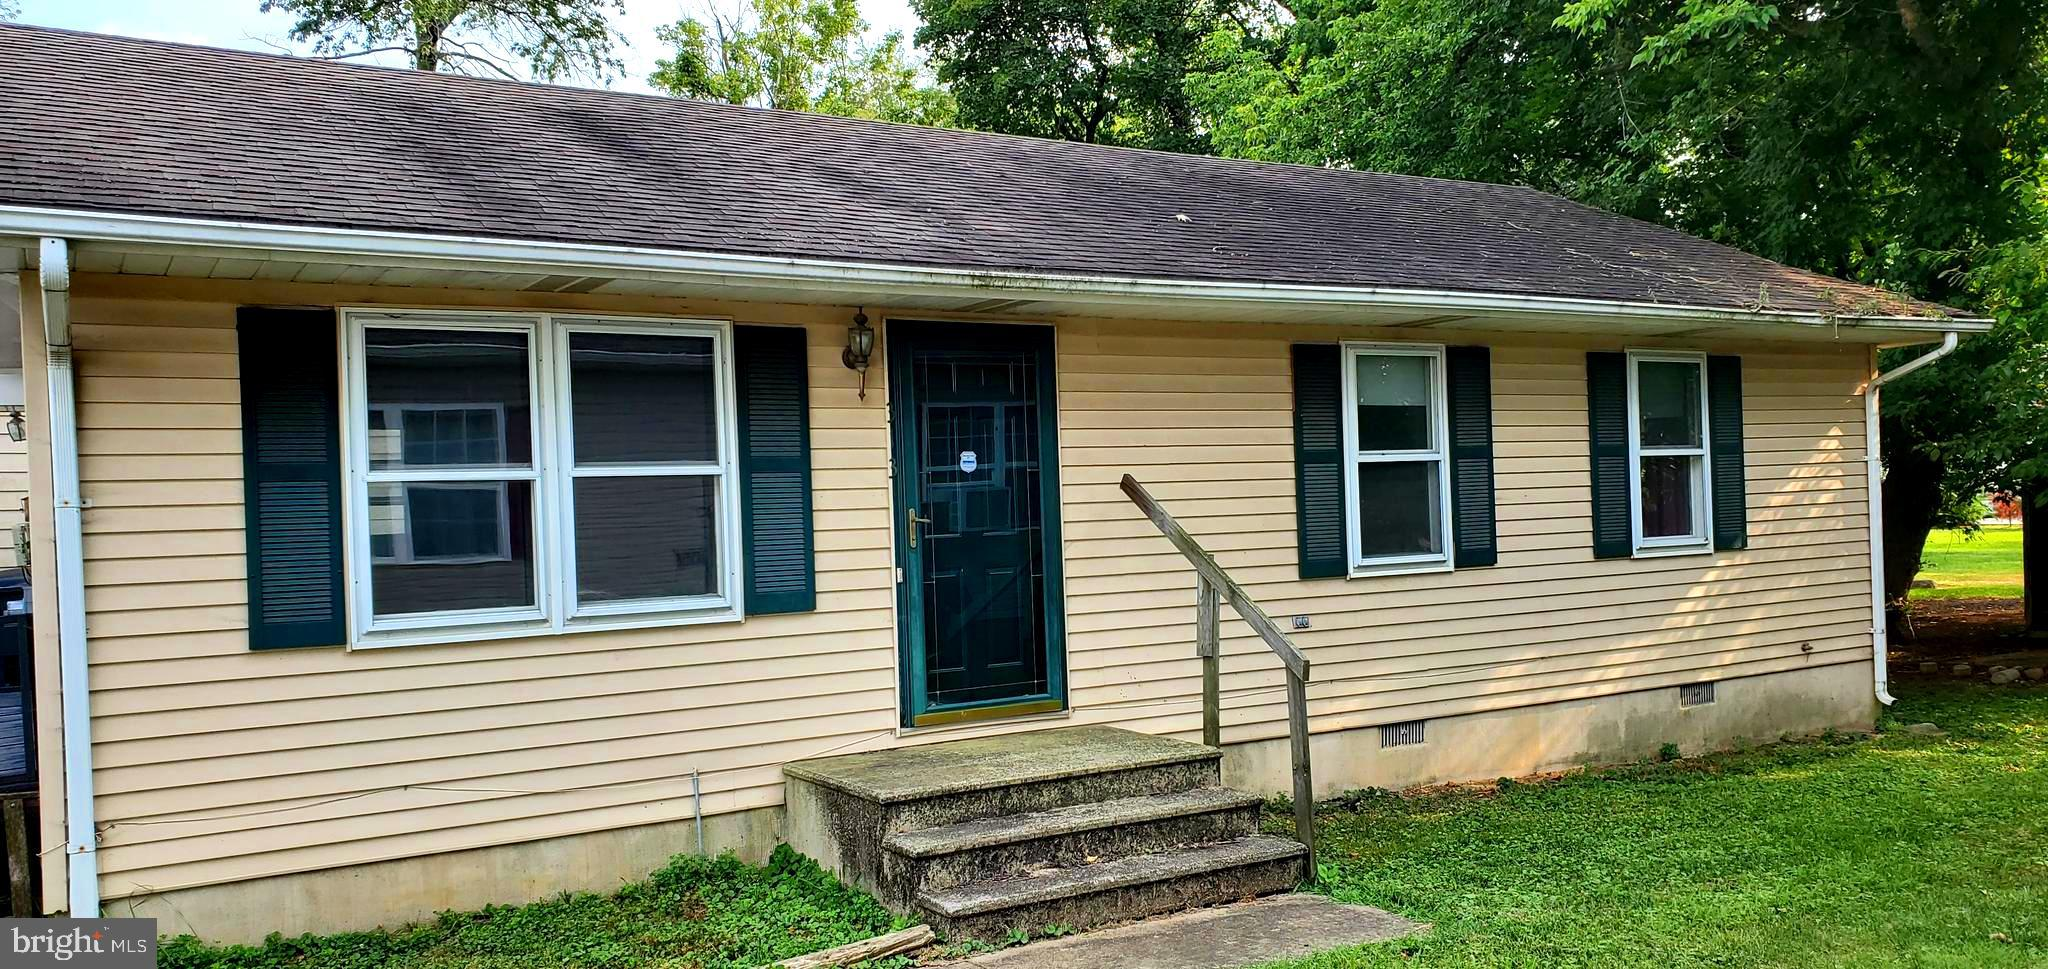 3 Bedroom Ranch home  2 full baths with living room Dining area and kitchen this home is ready move in on a quite street plenty of open space for outdoor outings. All appliances & shed being sold as-is.